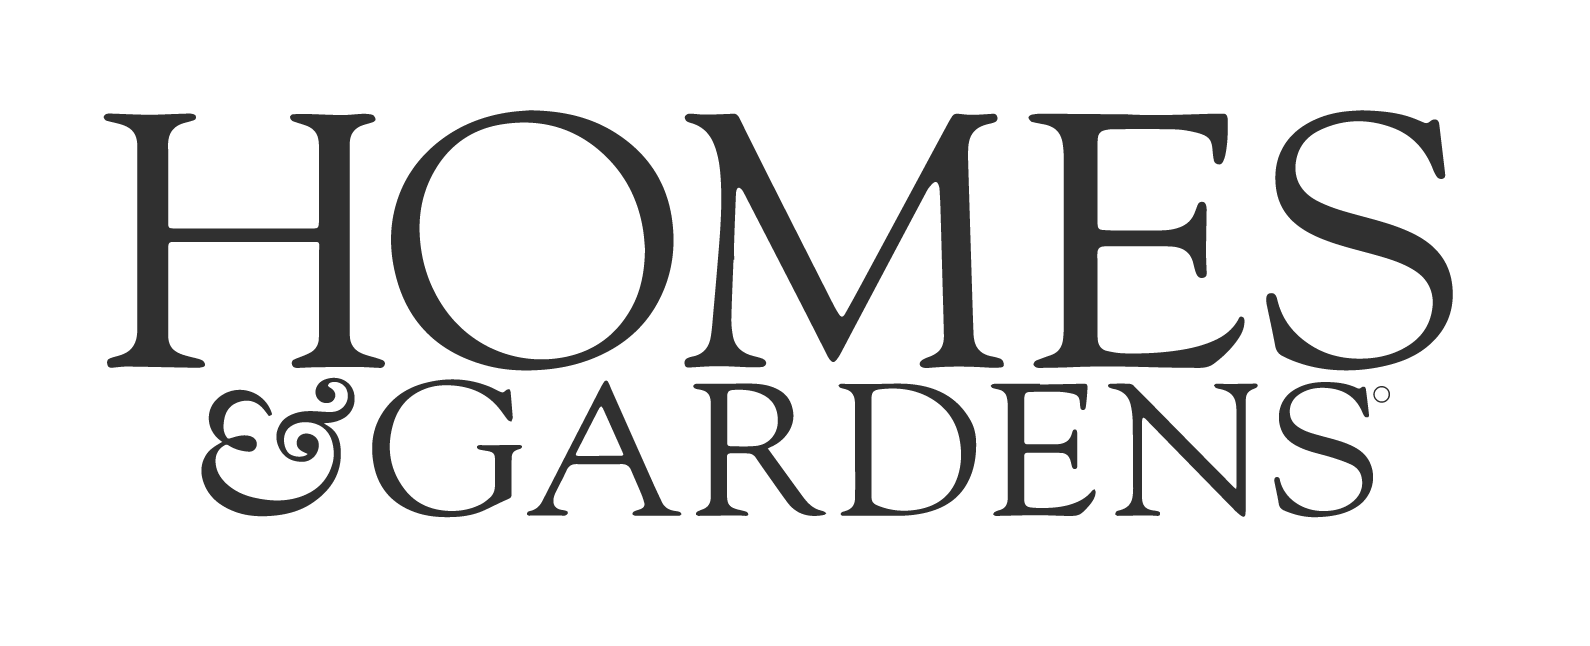 thinner image - home and gardens black logo